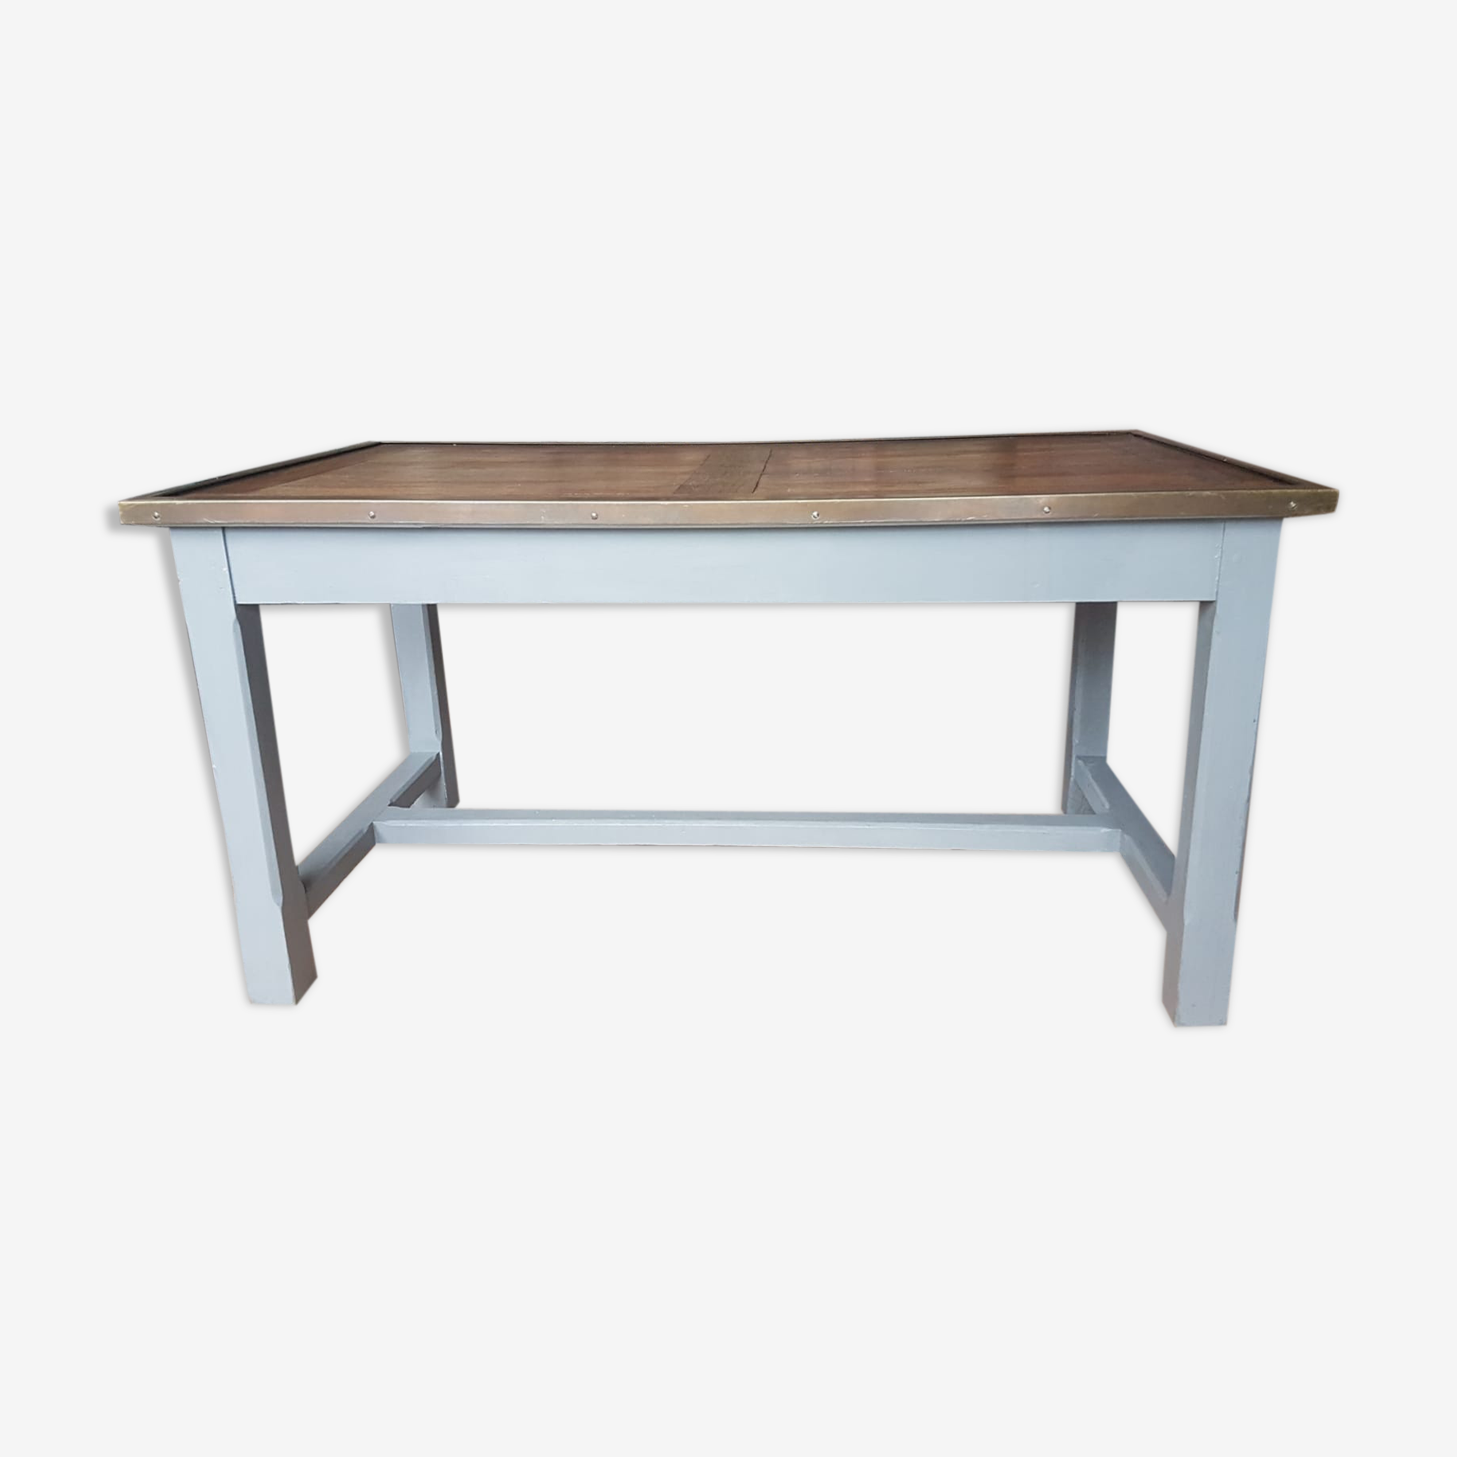 Bank wooden table